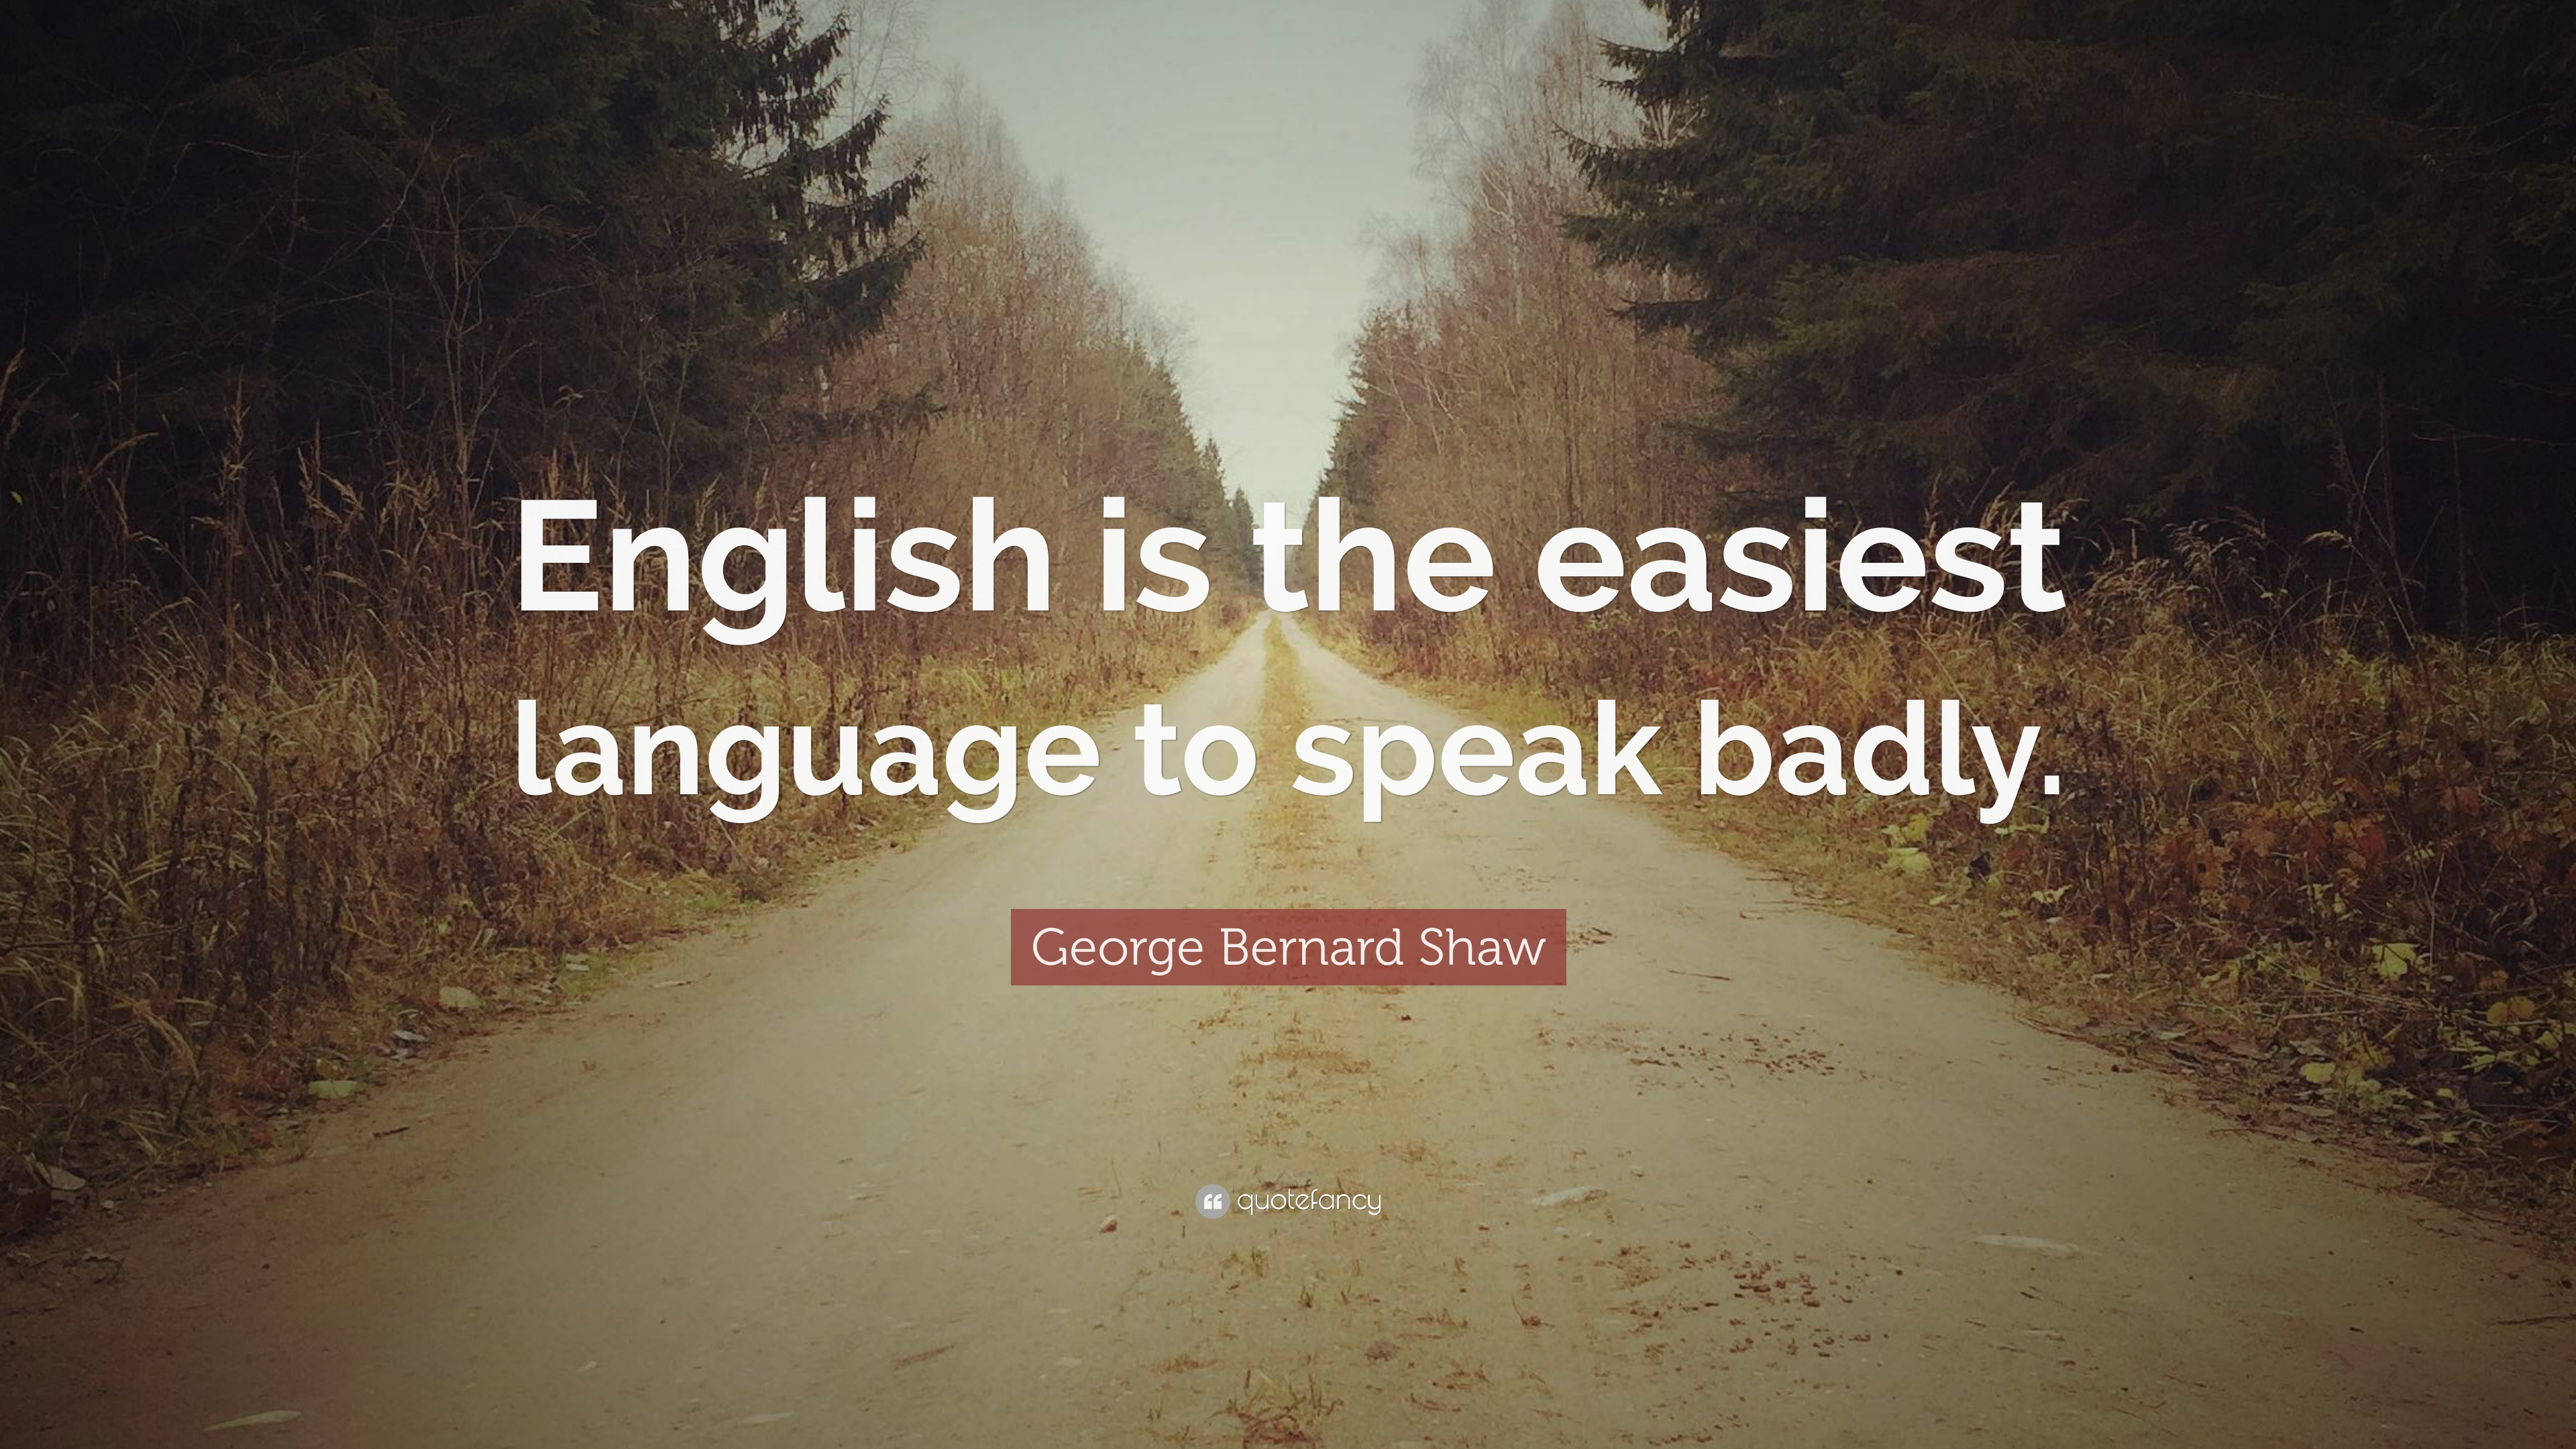 George Bernard Shaw Quote English Is The Easiest Language To Speak